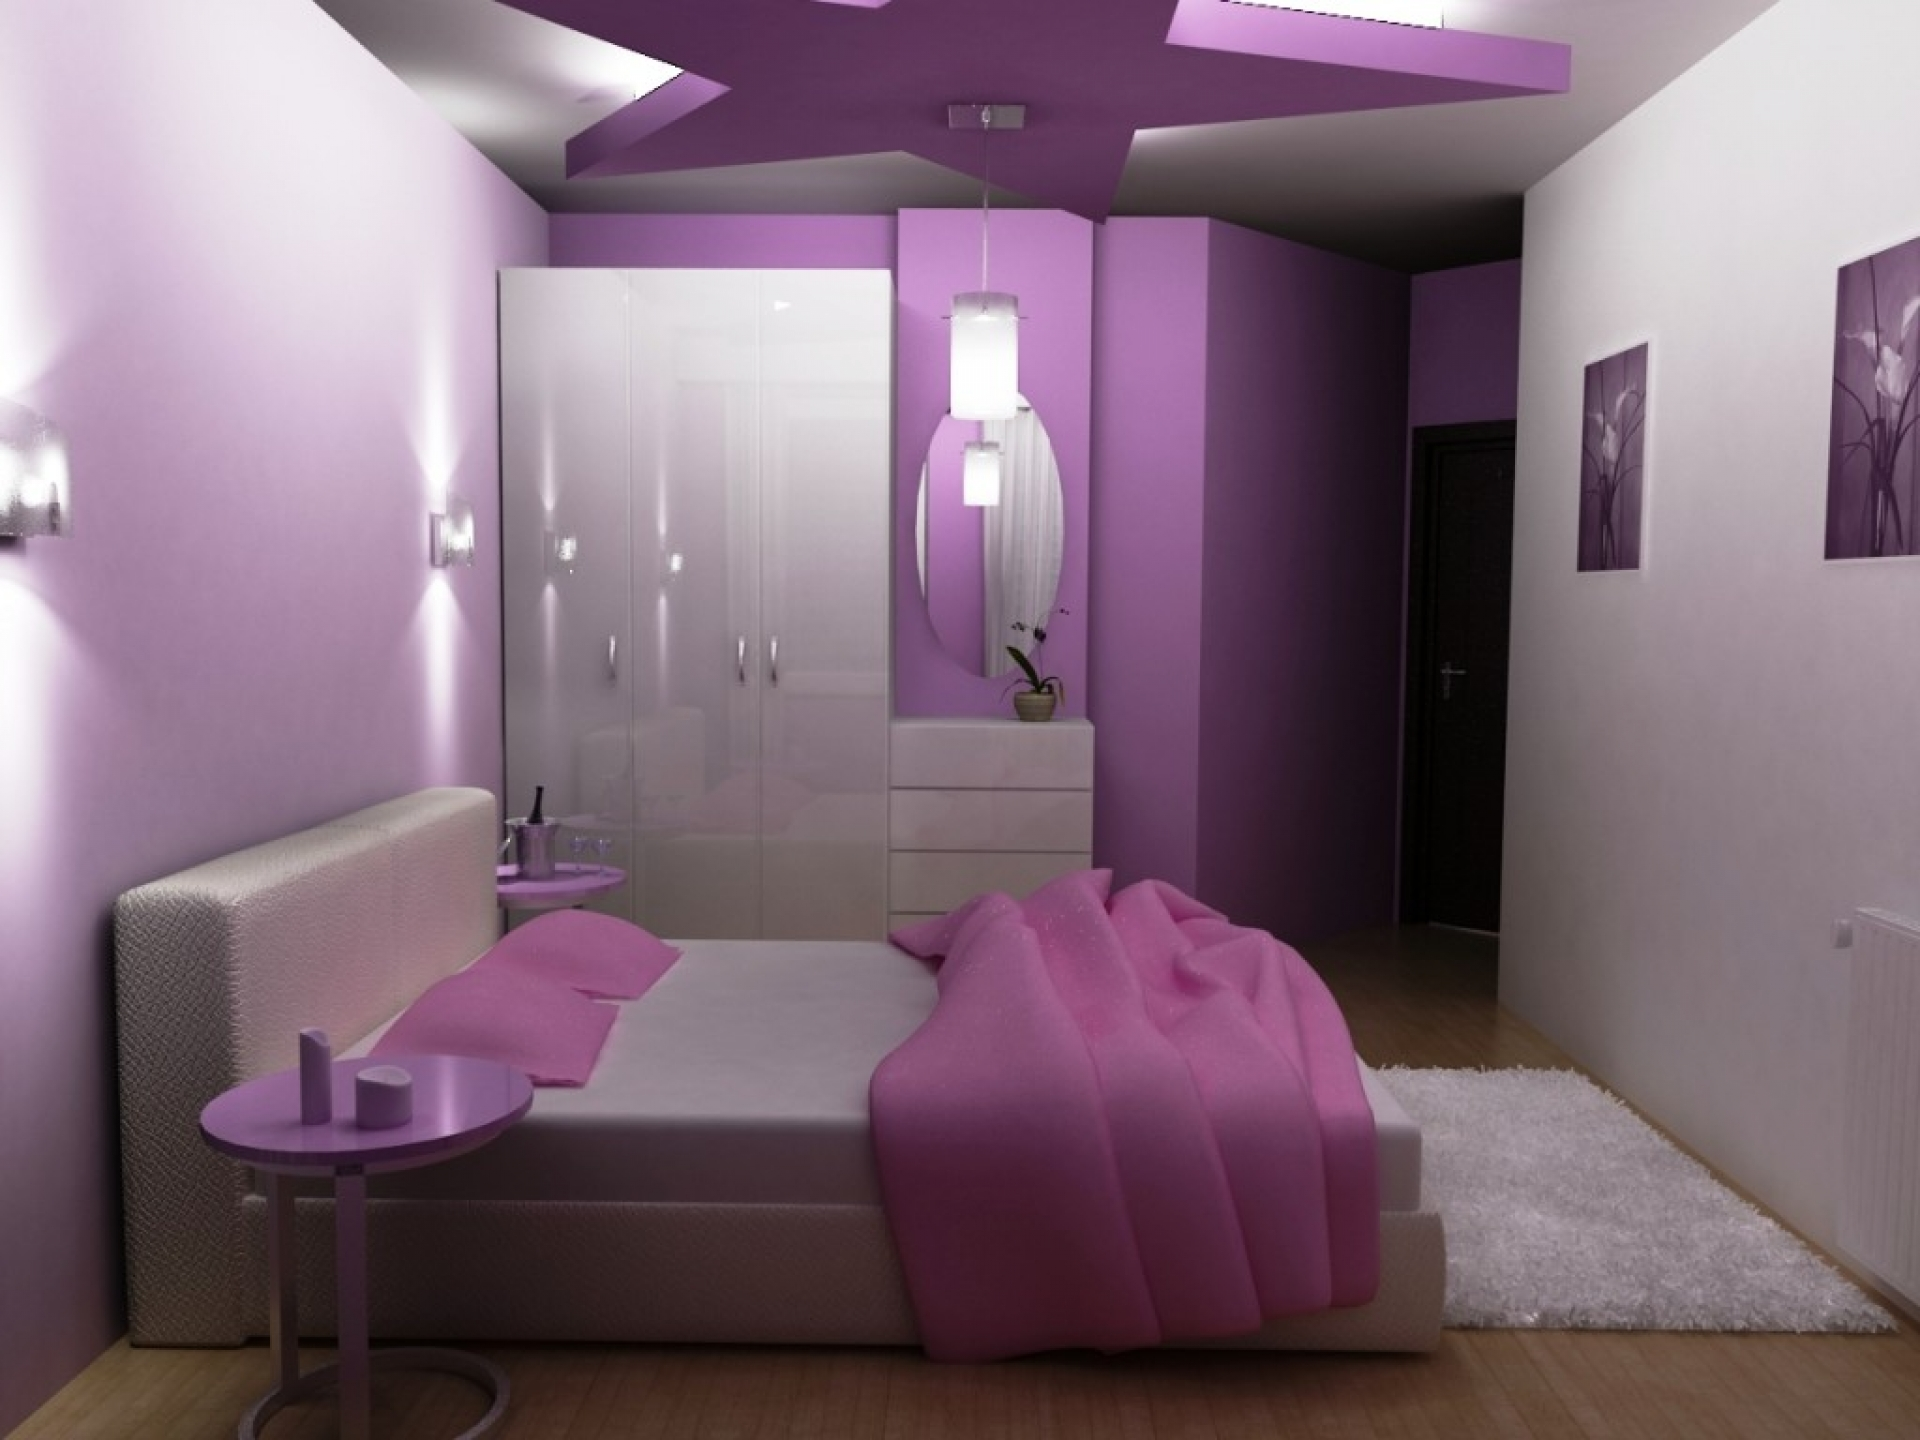 Big Star Ceiling Paint Ideas (Image 3 of 10)